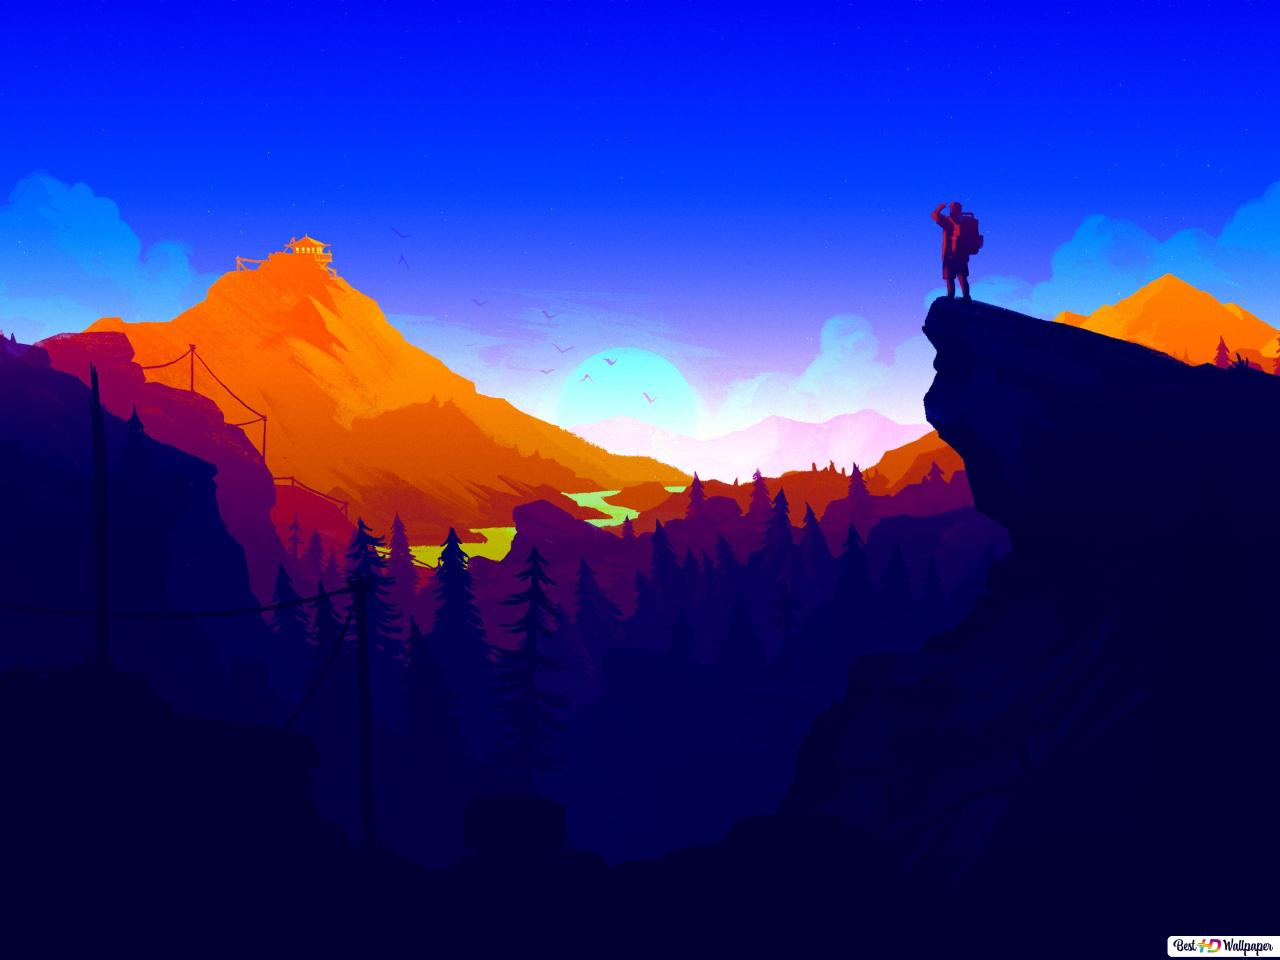 Firewatch Video Game Sunrise In Mountains Hd Wallpaper Download Images, Photos, Reviews